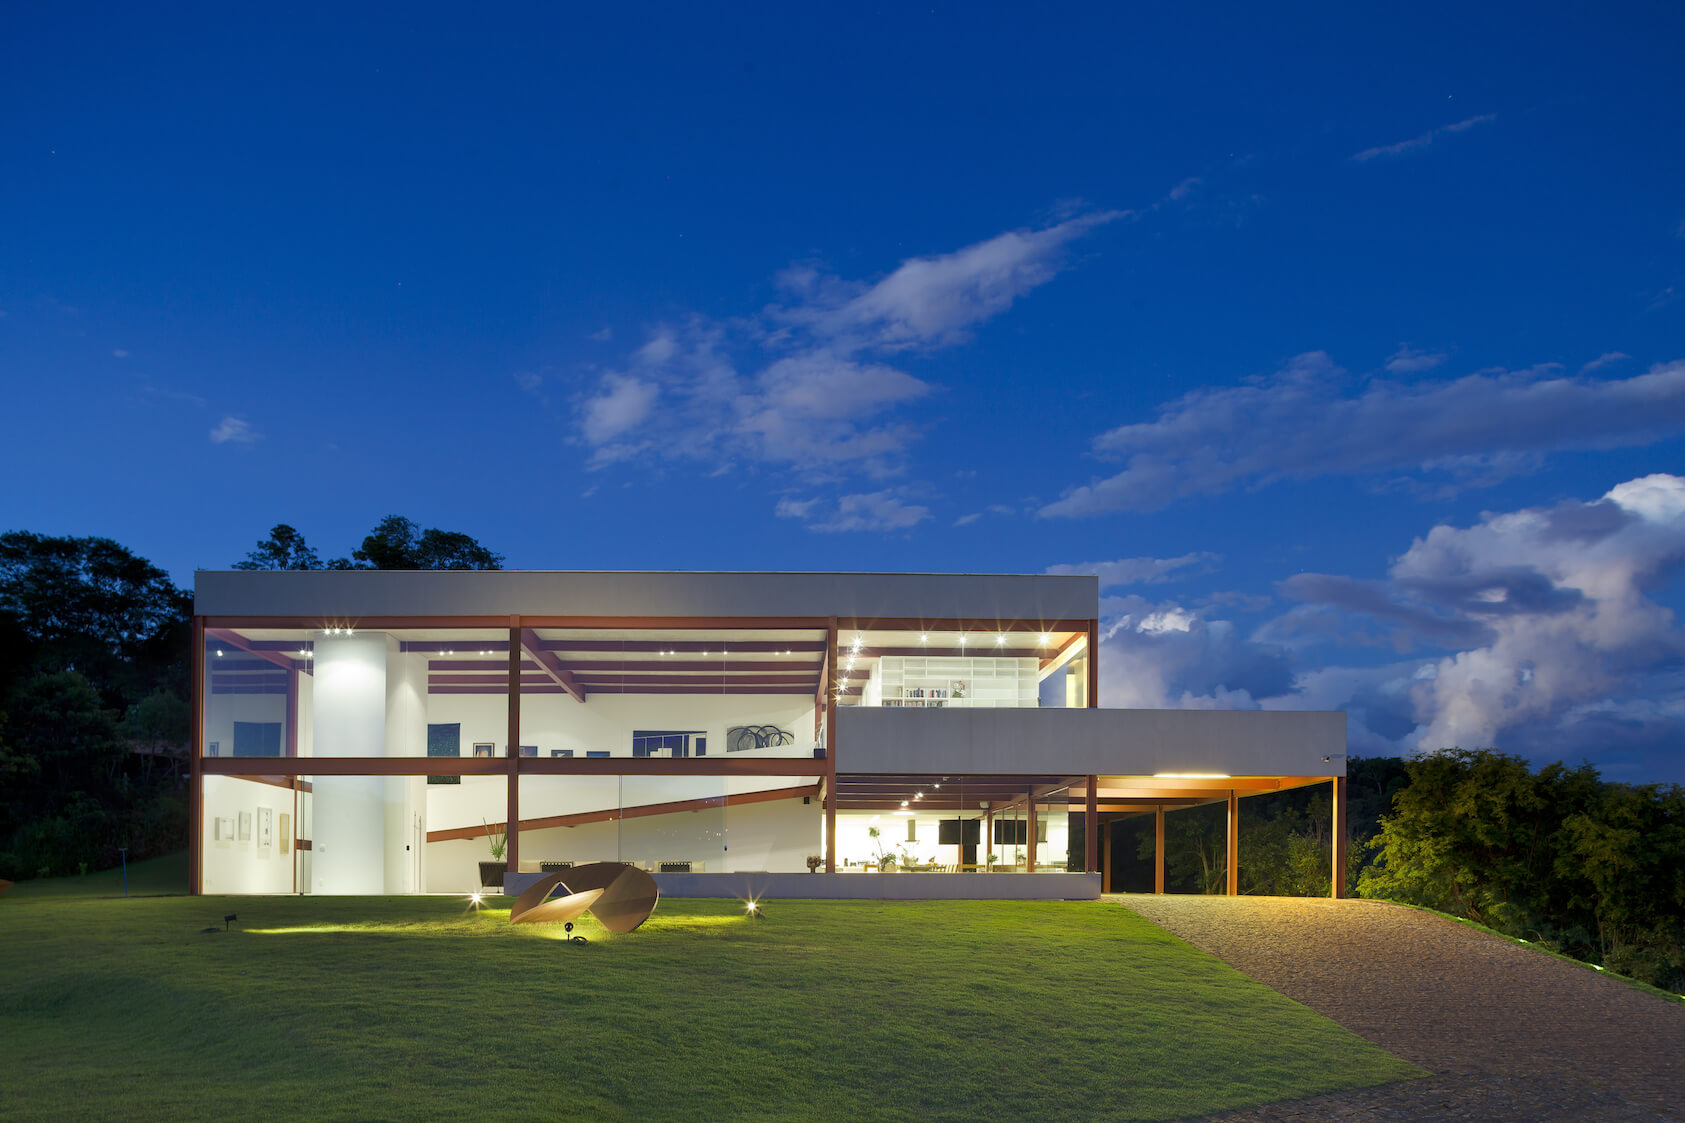 Stunning Casa das Gerais - an Art Gallery Modern Home by Denise Macedo Architects.